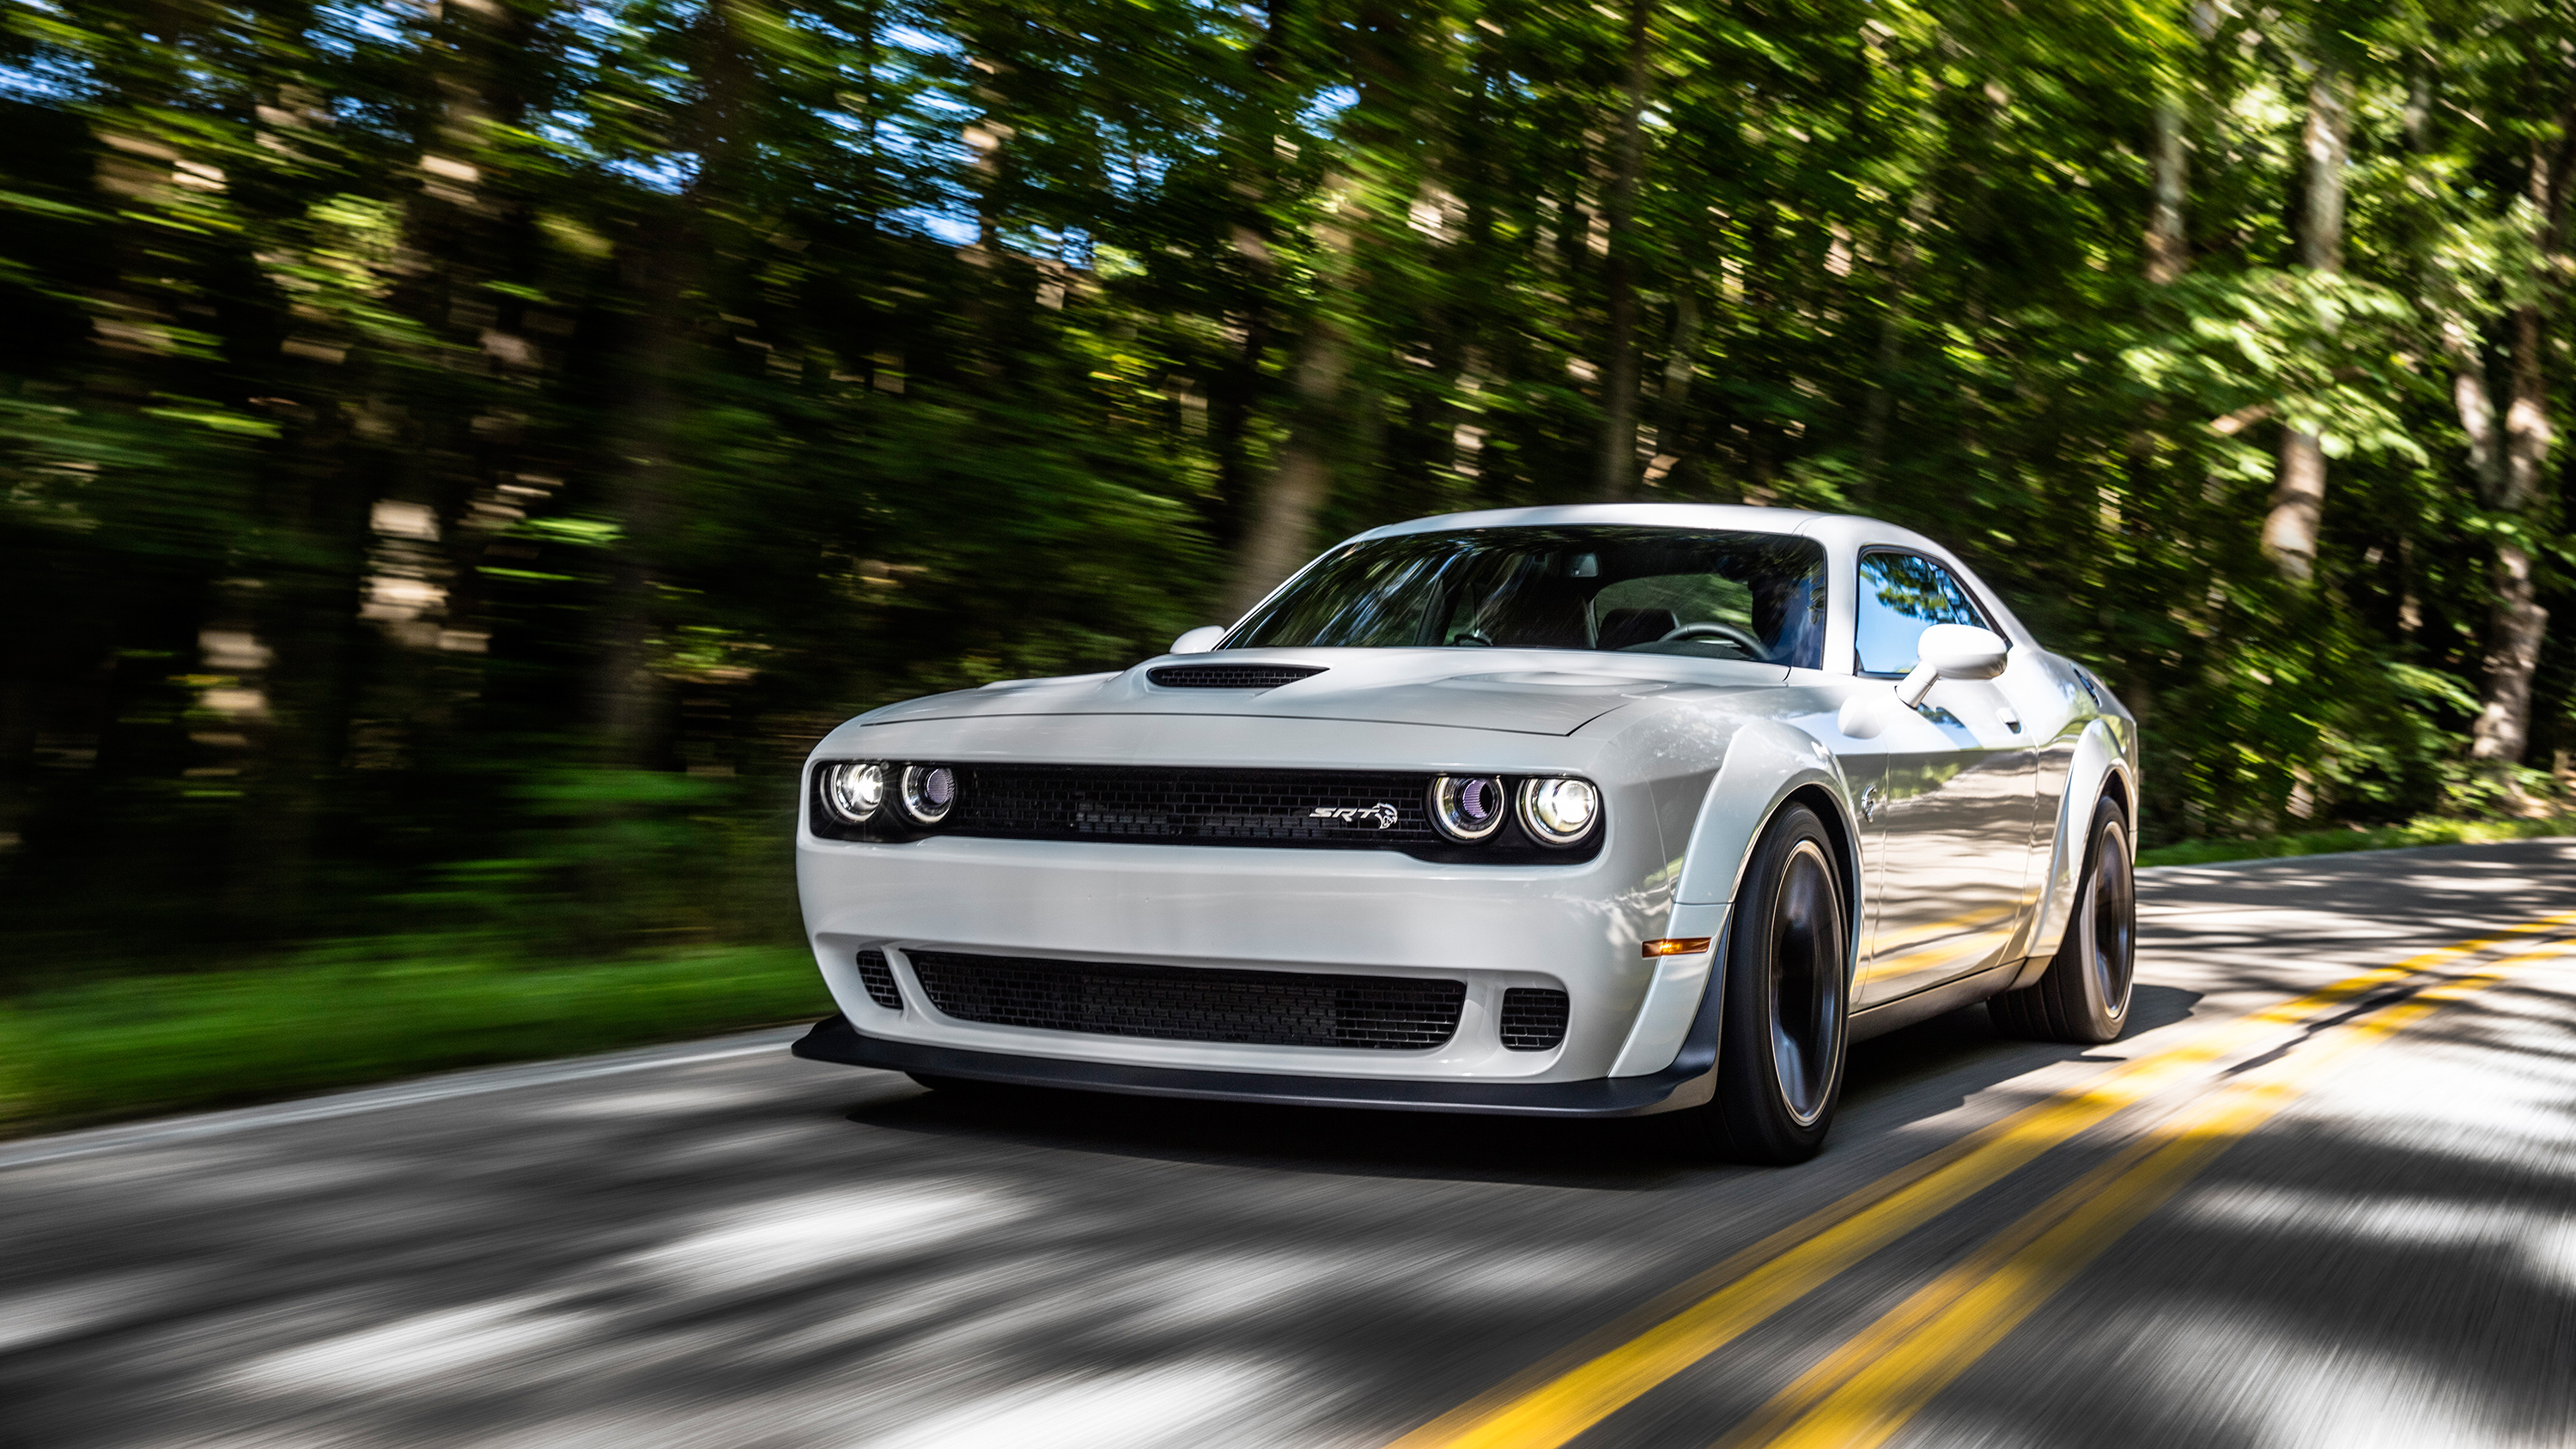 2016 Dodge Challenger Hellcat Wallpaper >> Dodge Challenger Srt Hellcat Wallpaper Hd Upcoming Cars 2020